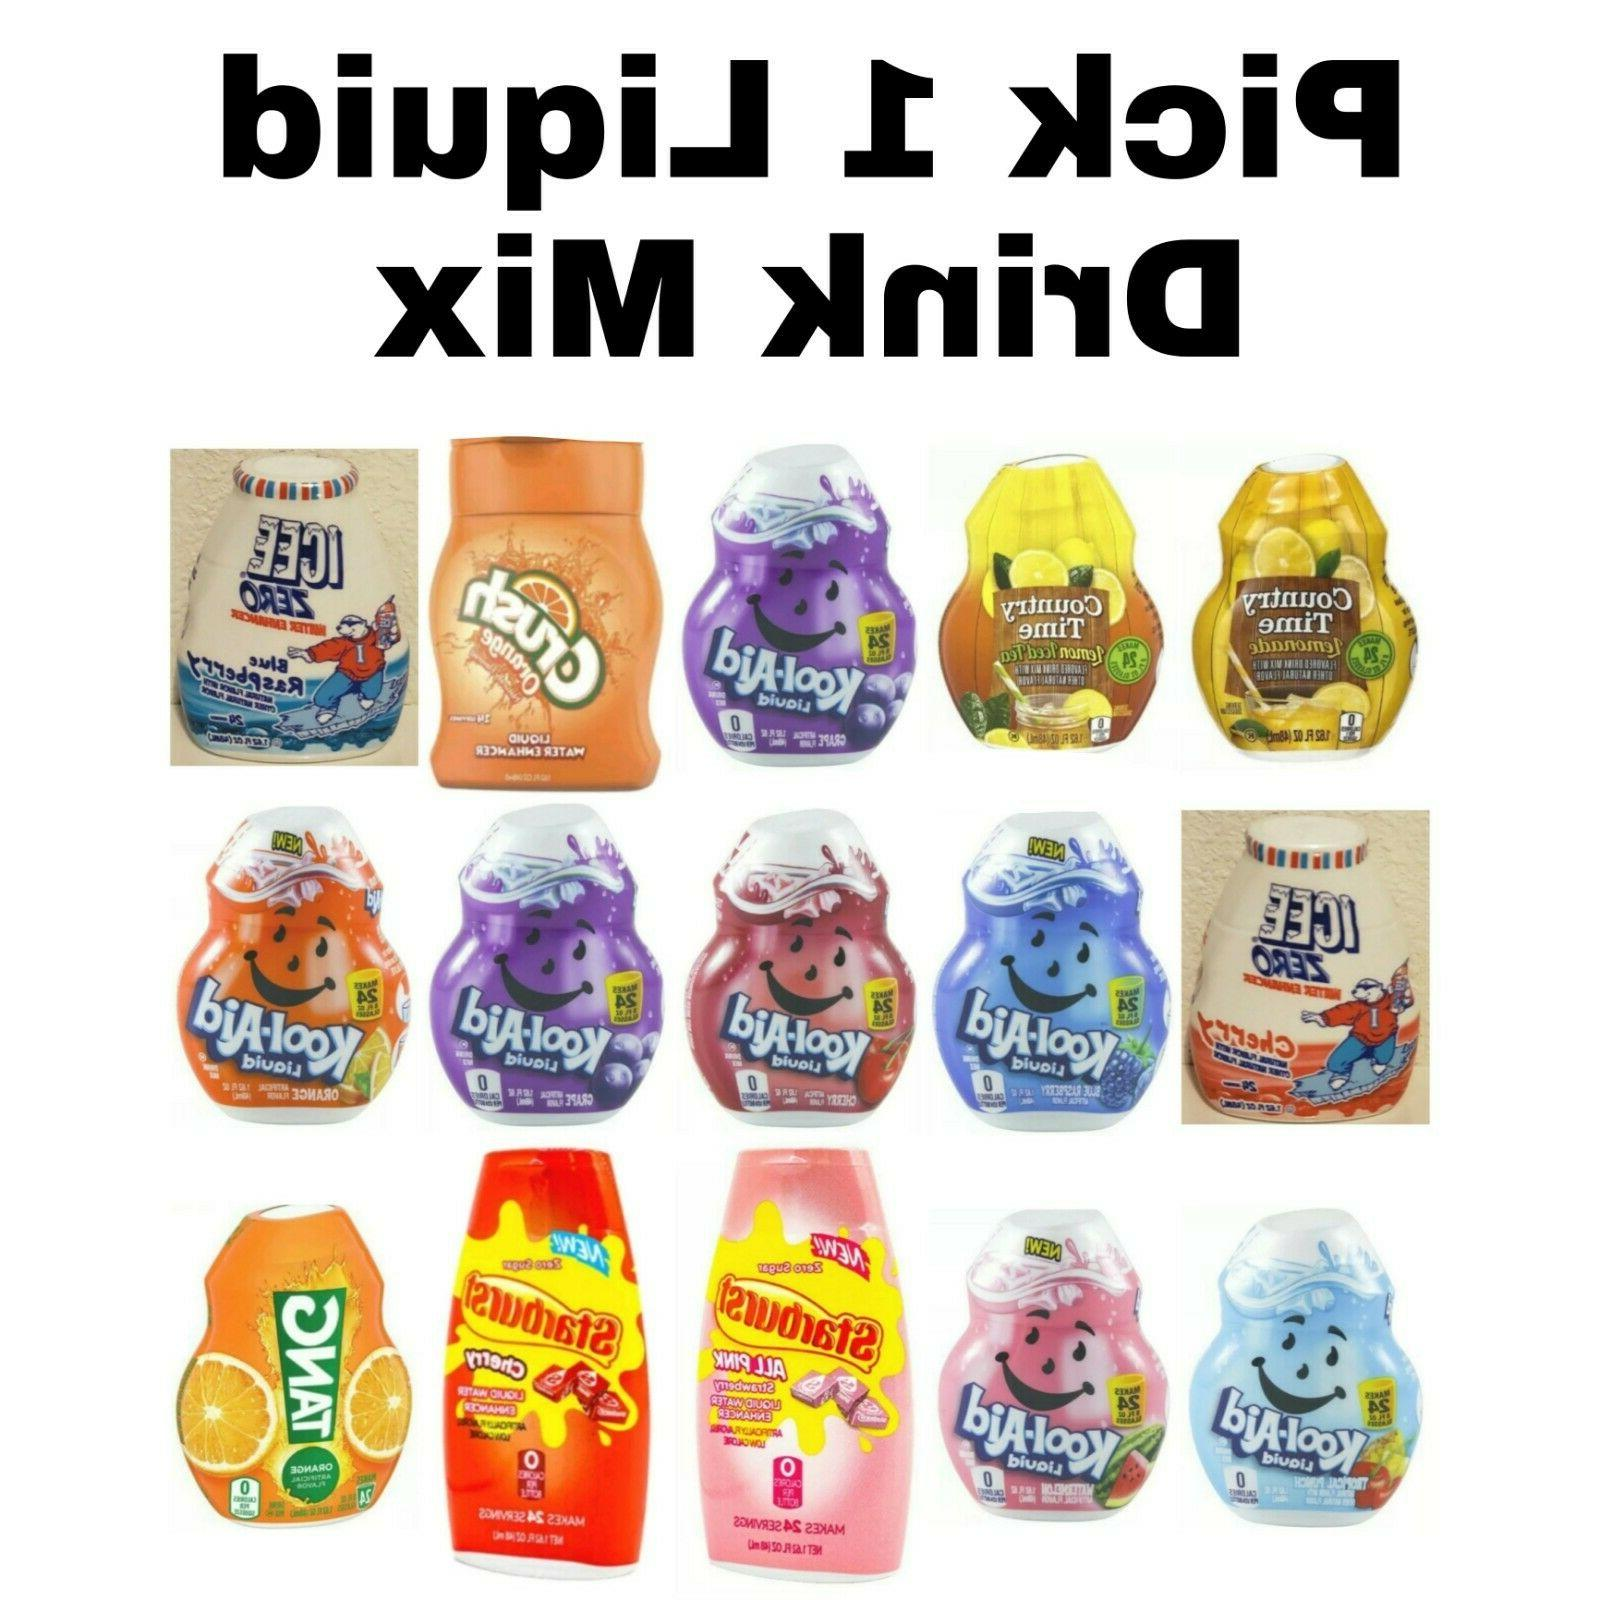 drink mix variety pack sugar free pick